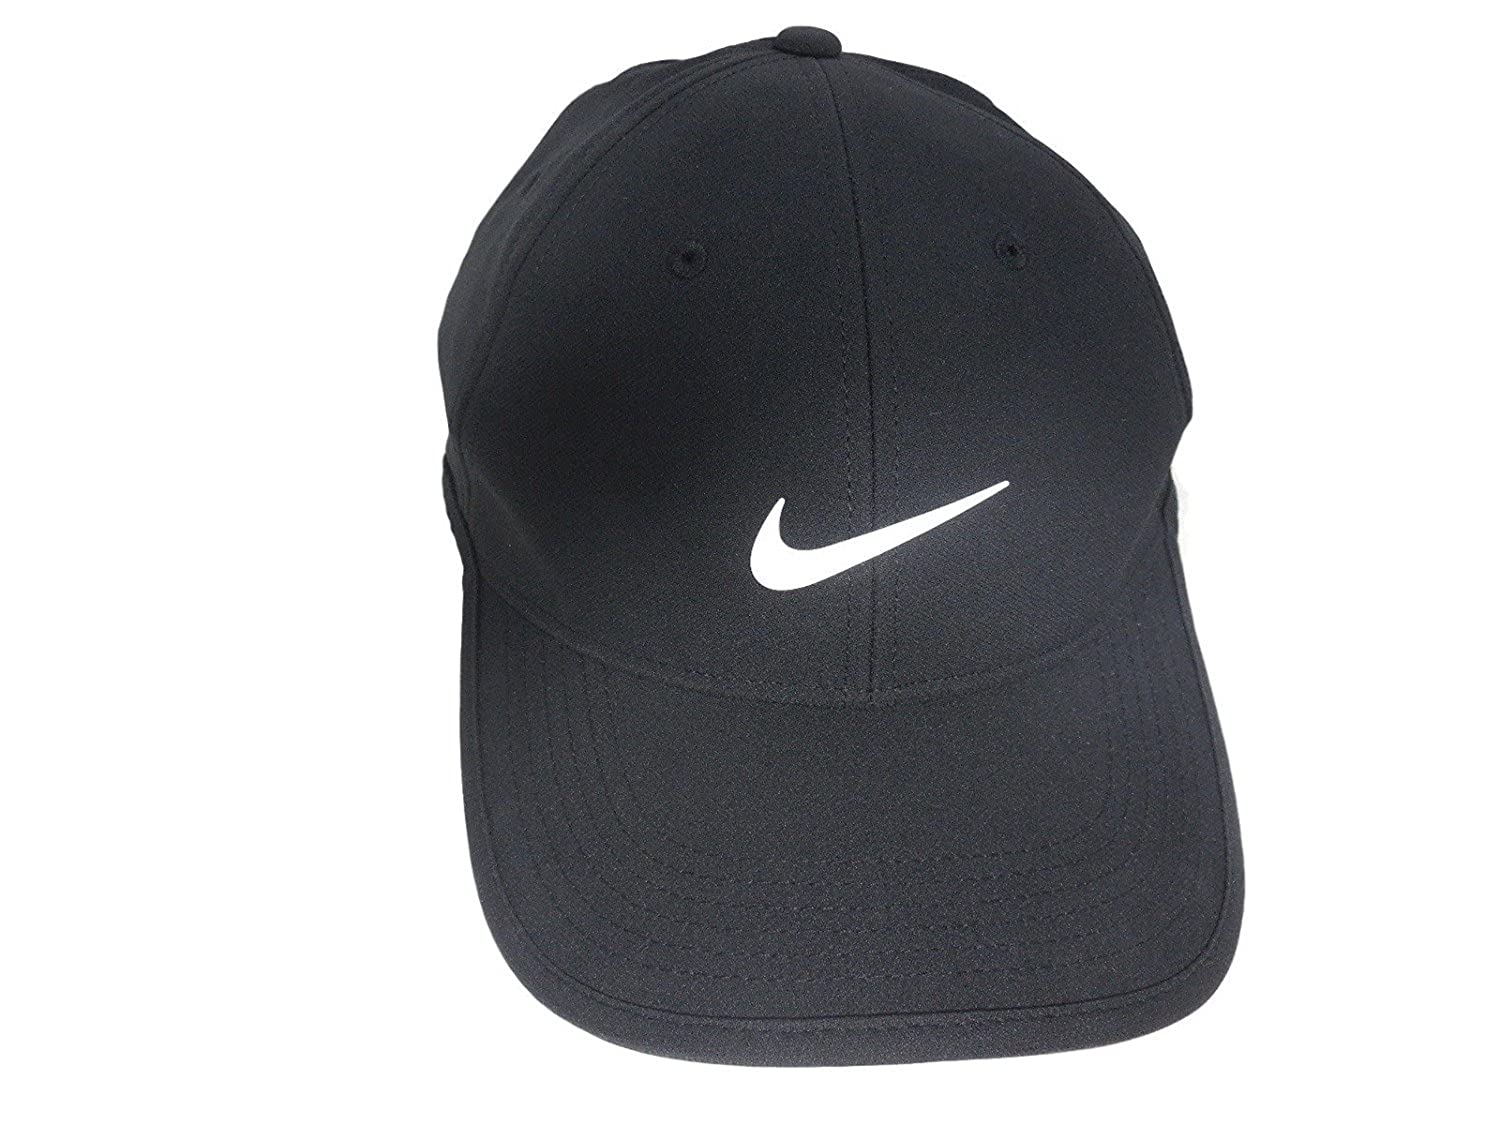 c0cbd822a74ca Amazon.com  NIKE Ultralight Golf Cap Pro Tour Dri-Fit Hat (Black White)   Clothing